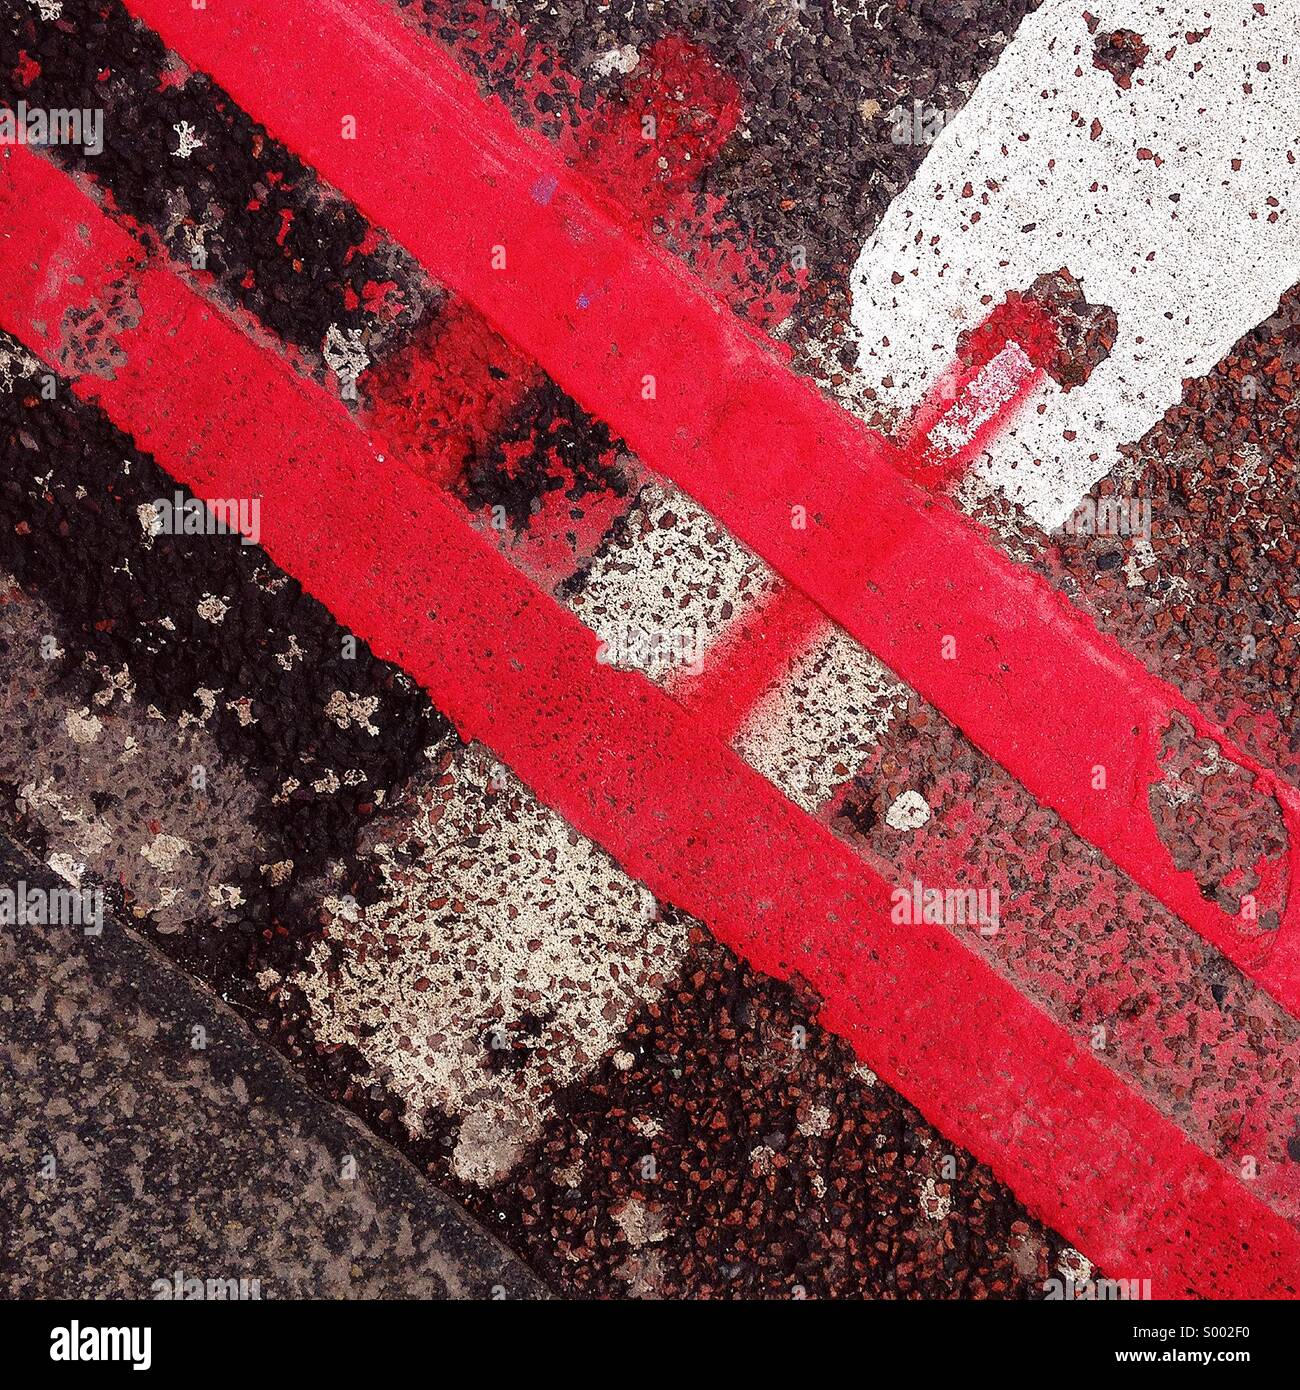 Road marking graffiti - Stock Image